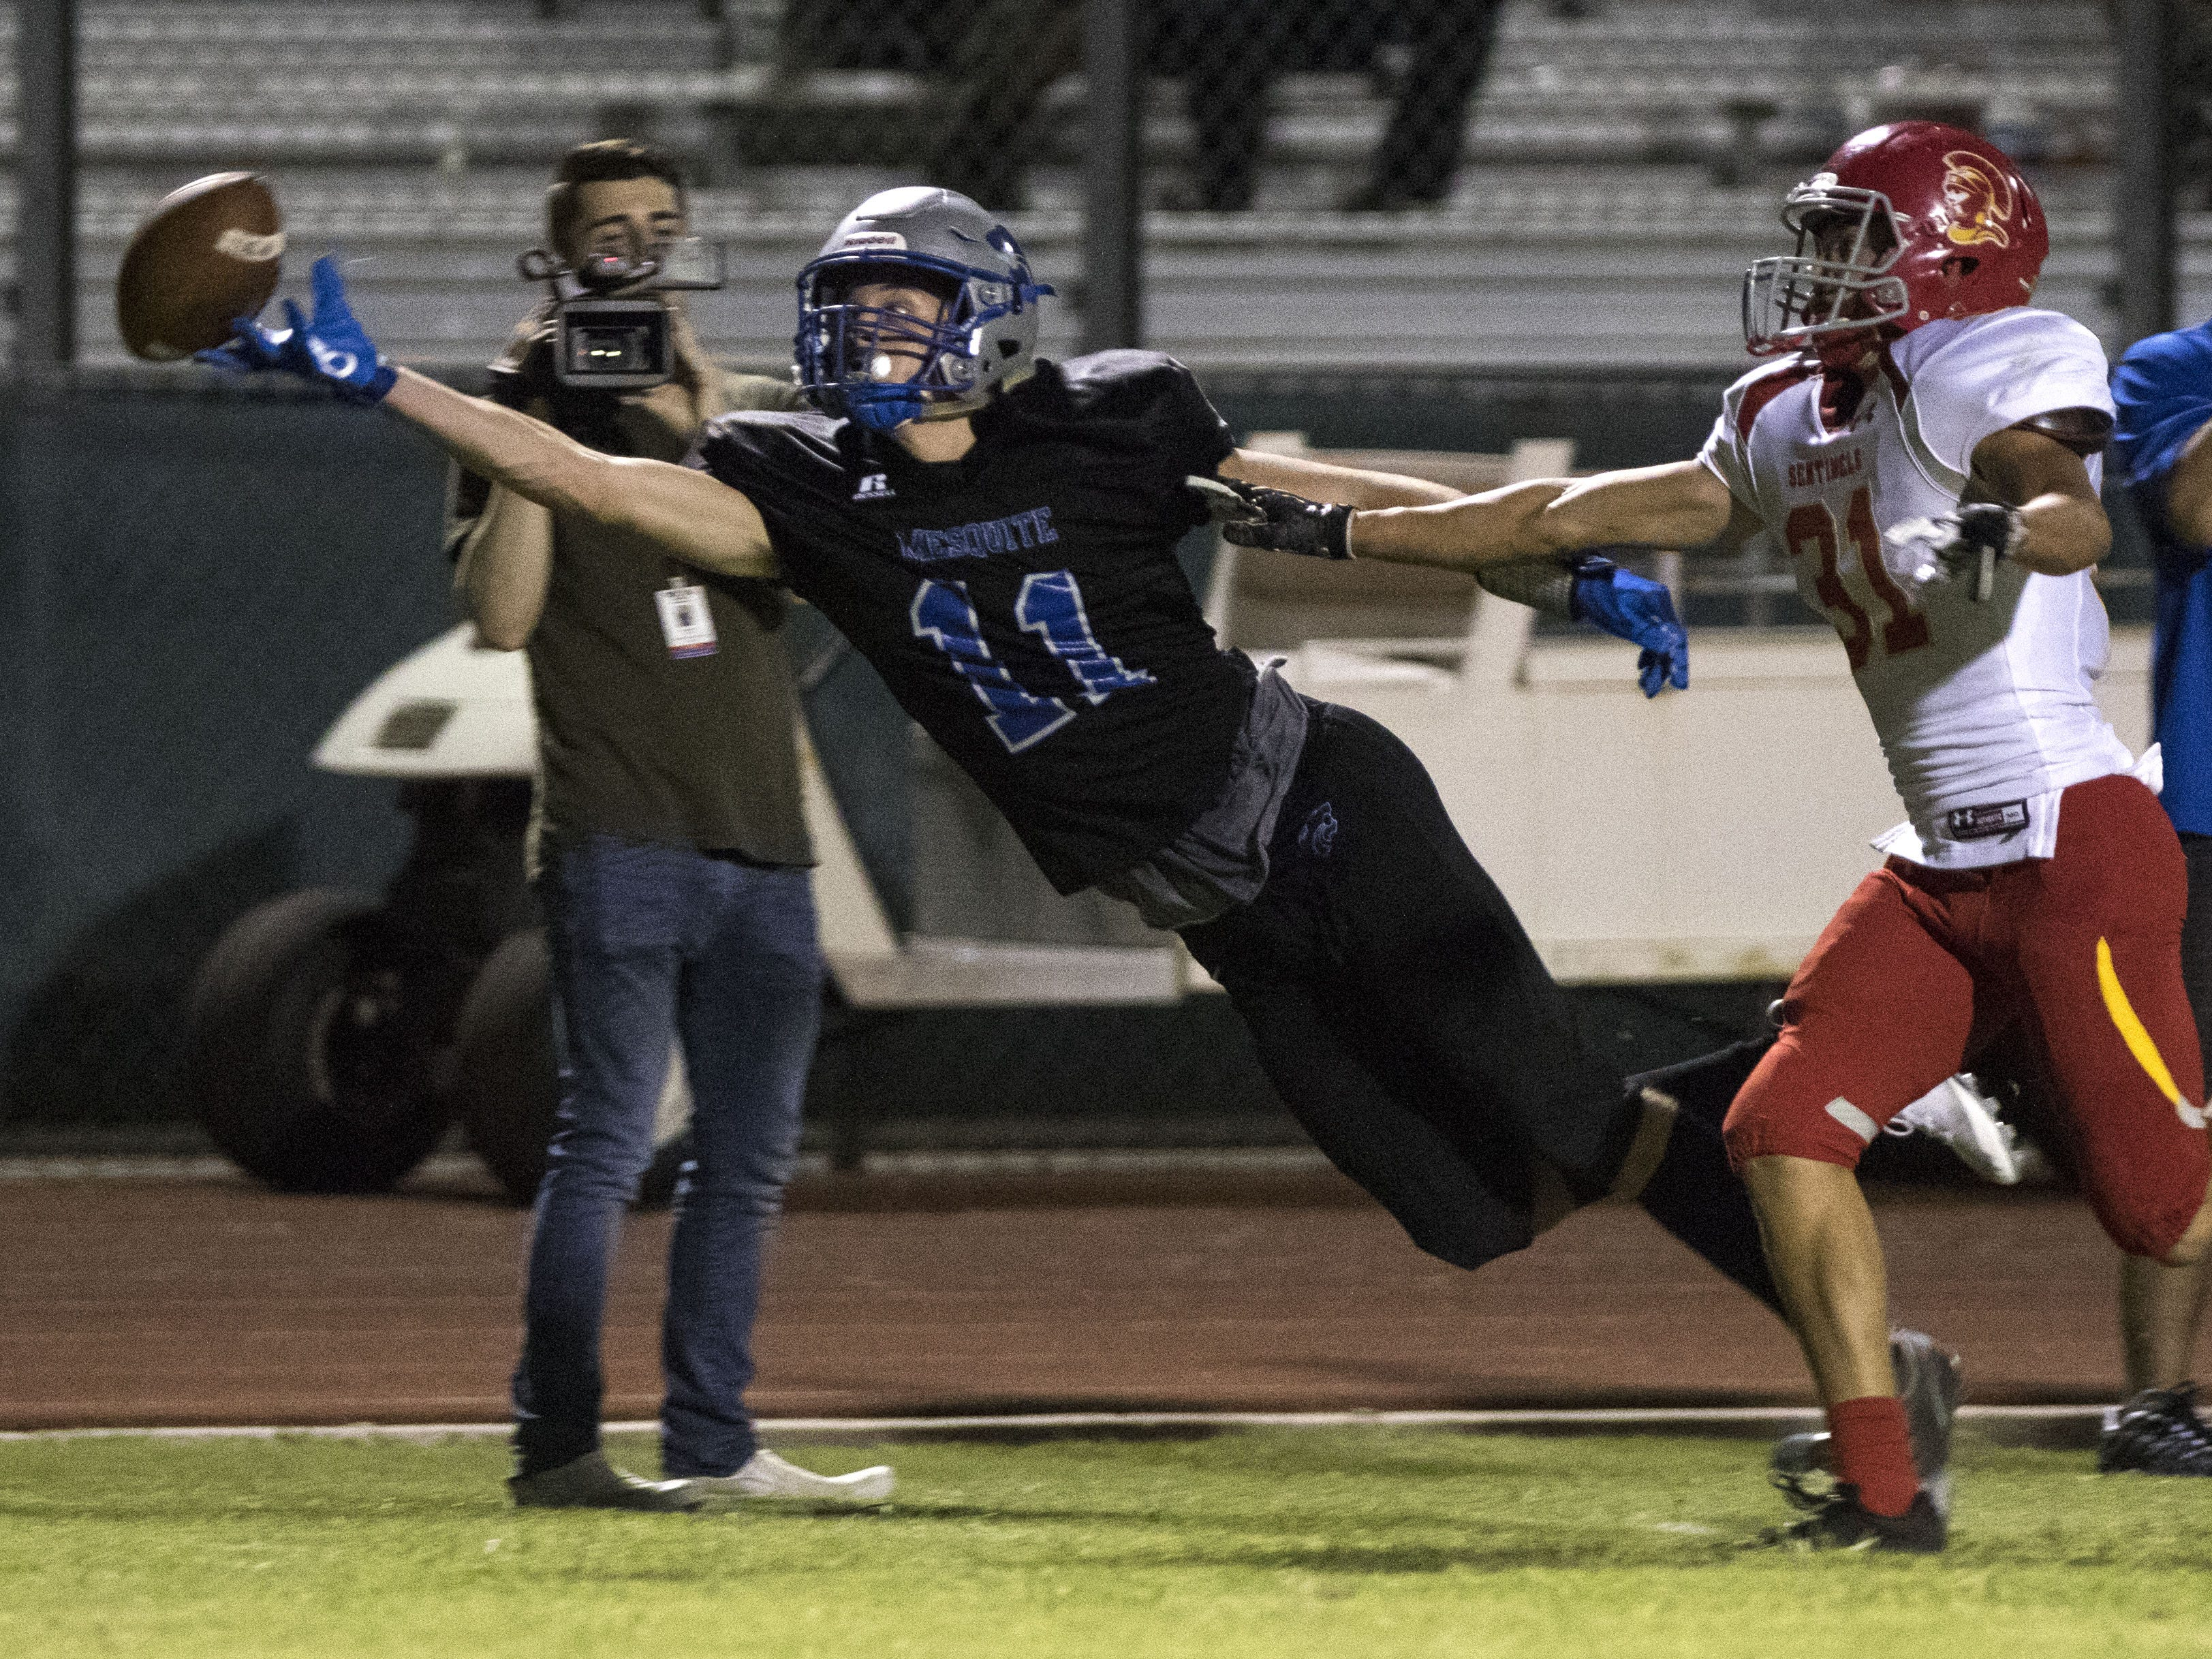 Mesquite's Jacob Walker has the ball on the edge of his fingertips but couldn't haul it in against Seton's Rube Woolsey during their game in Gilbert Friday, Sept. 21, 2018. #azhsfb